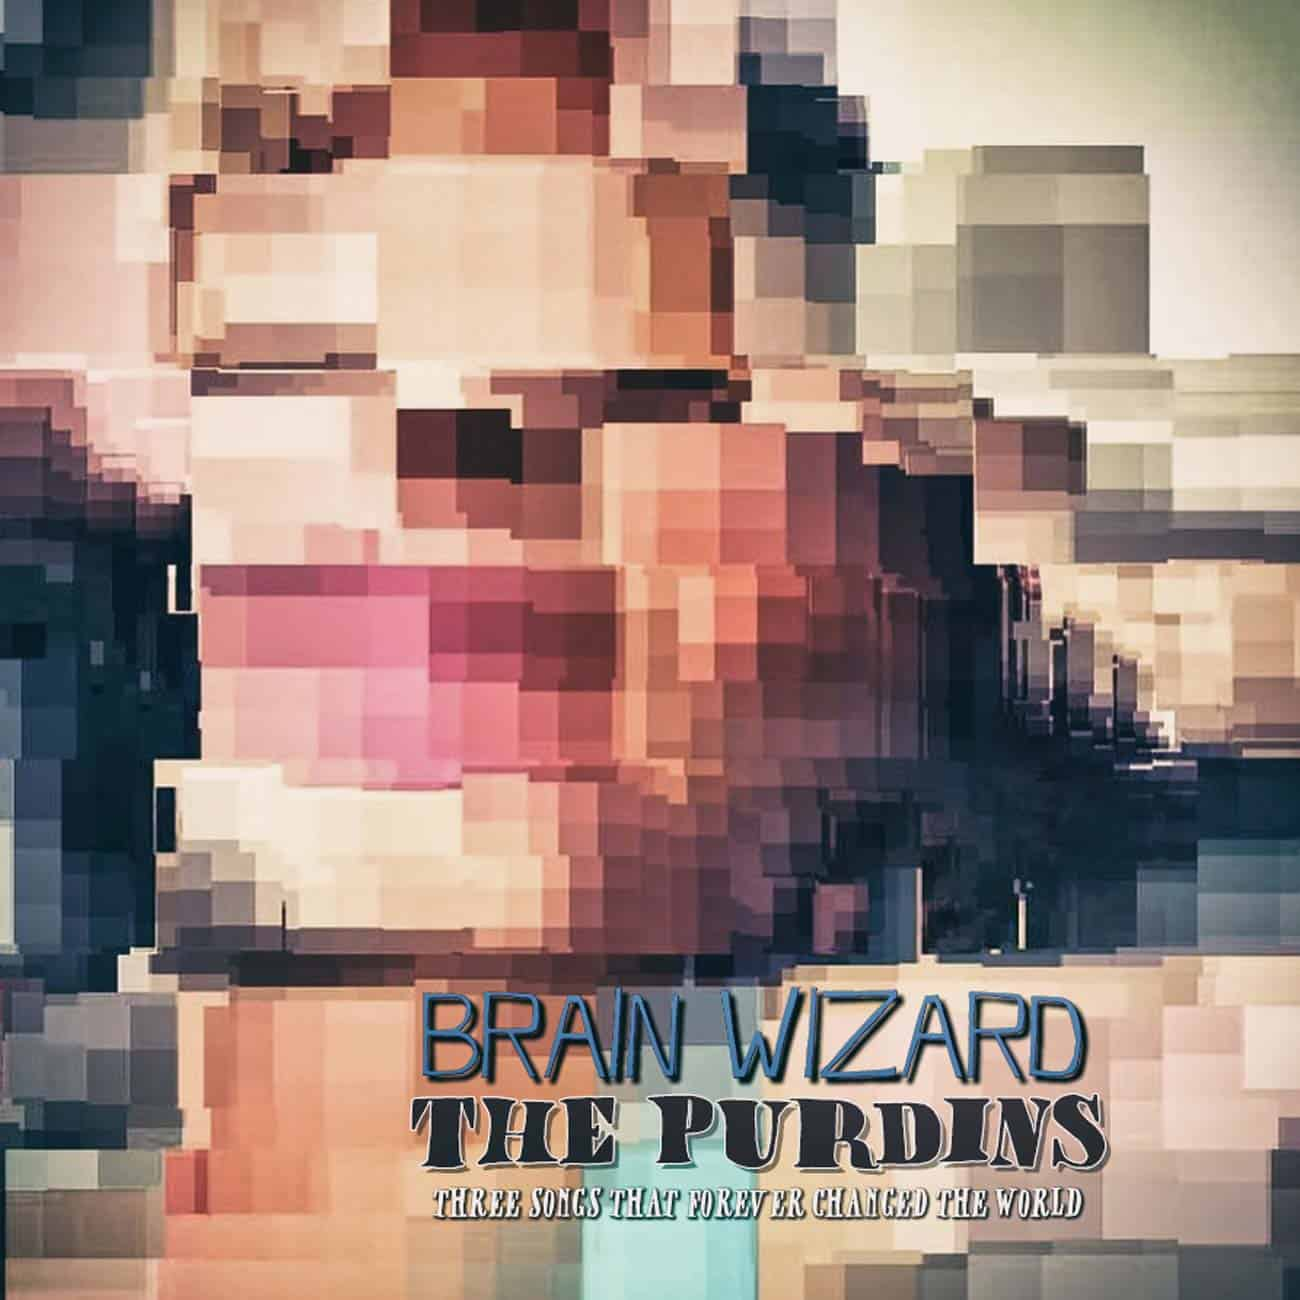 The Brain Wizard Returns.